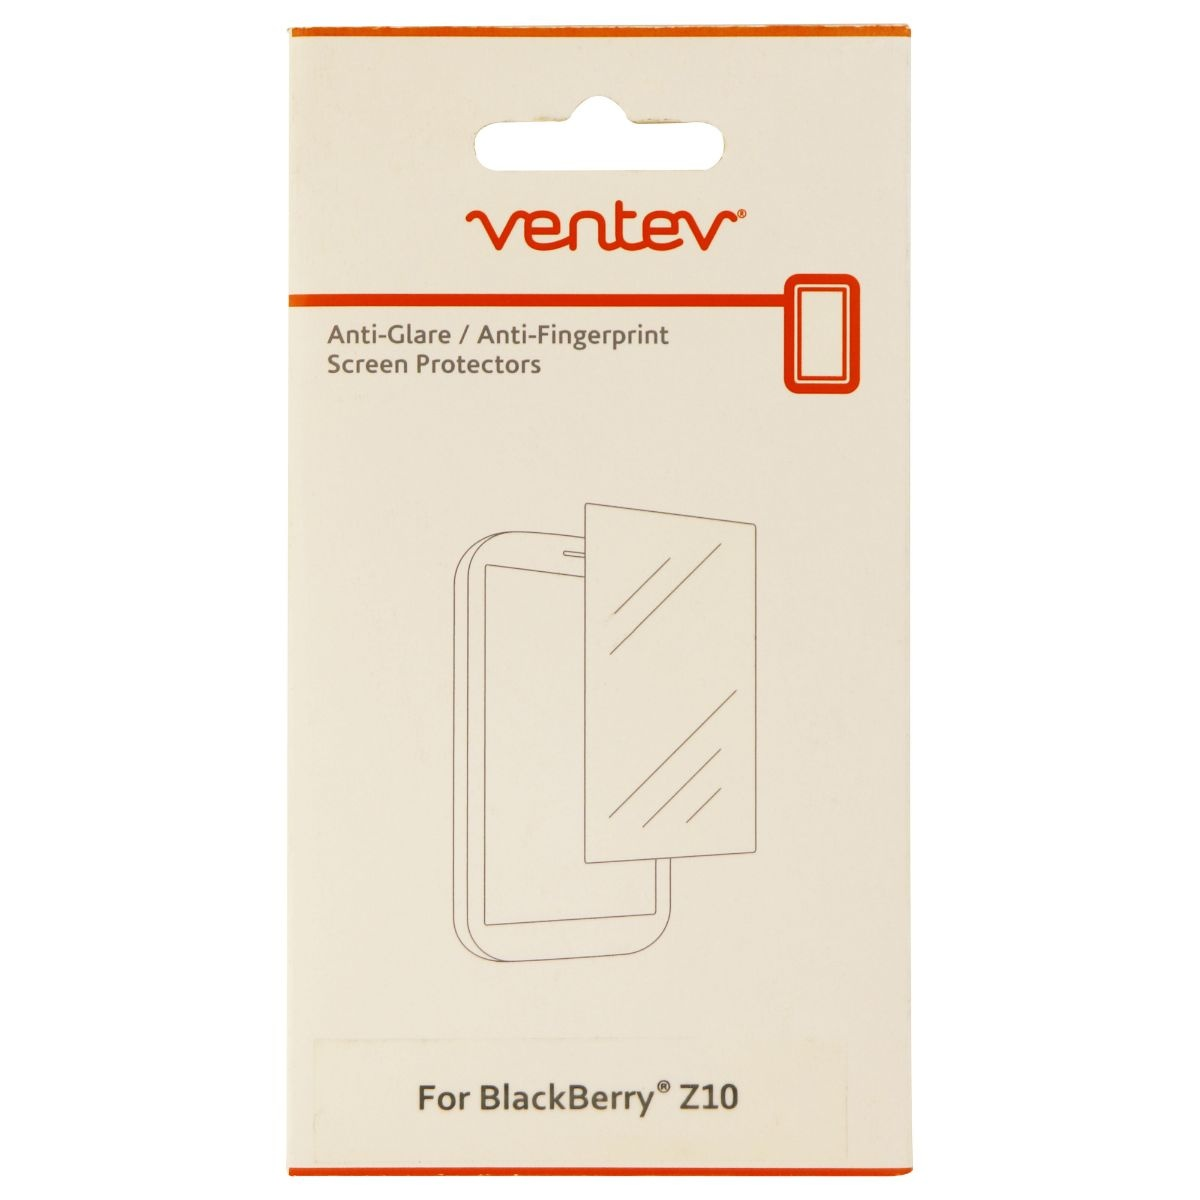 Ventev Anti Glare Screen Protector for Blackberry Z10 - 2 pack - Clear